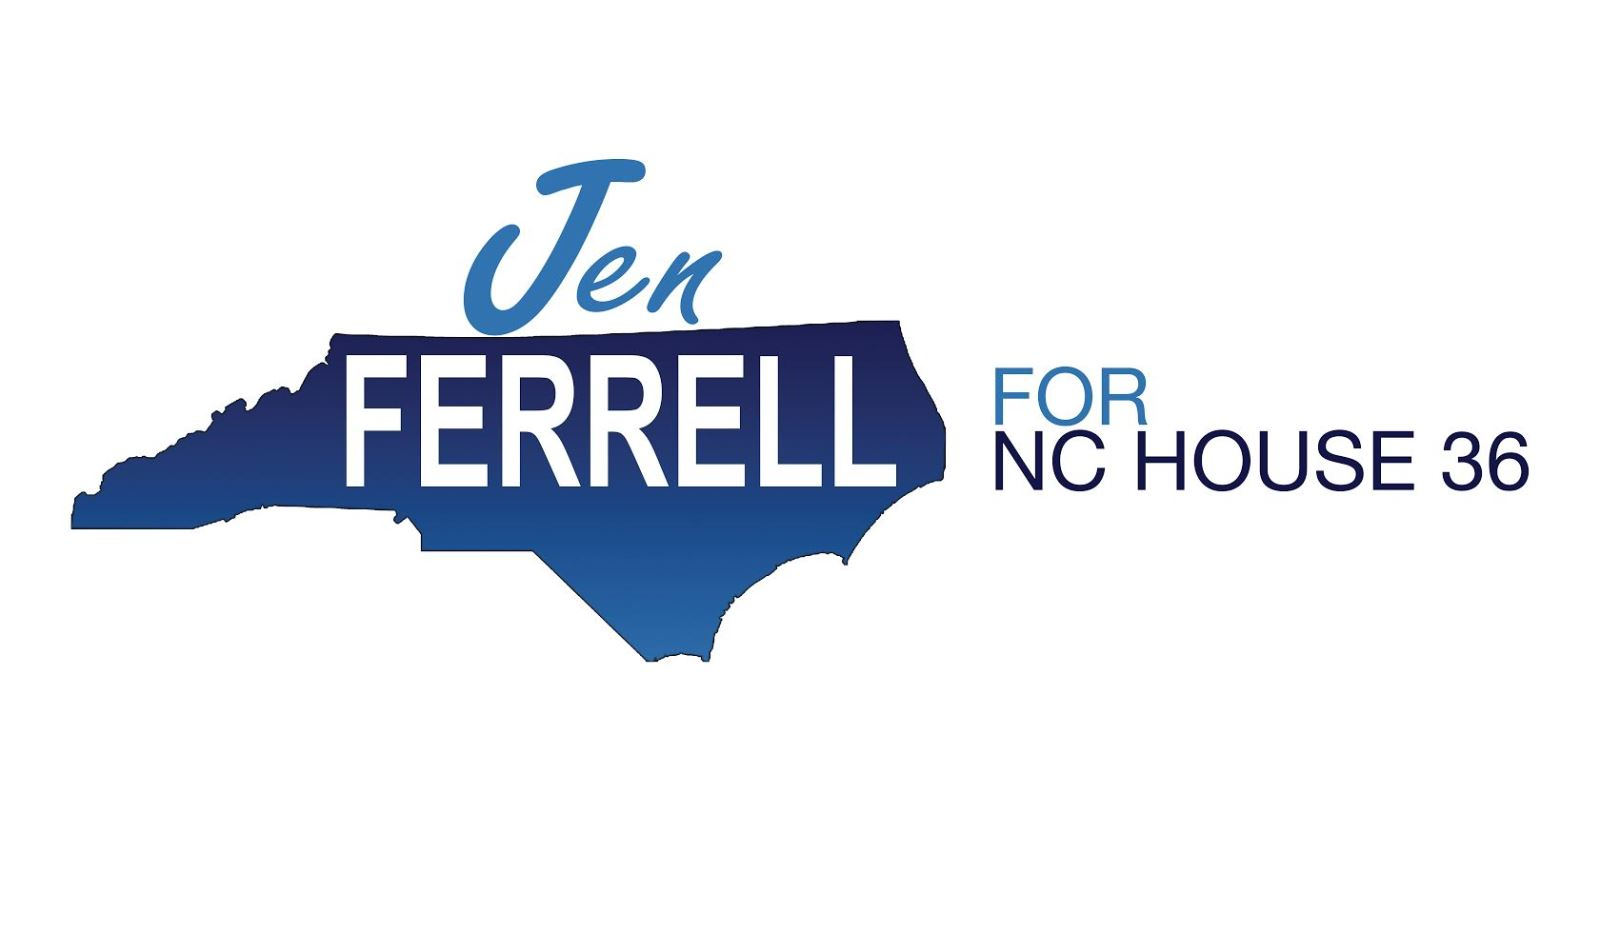 Jen Ferrell for NC House